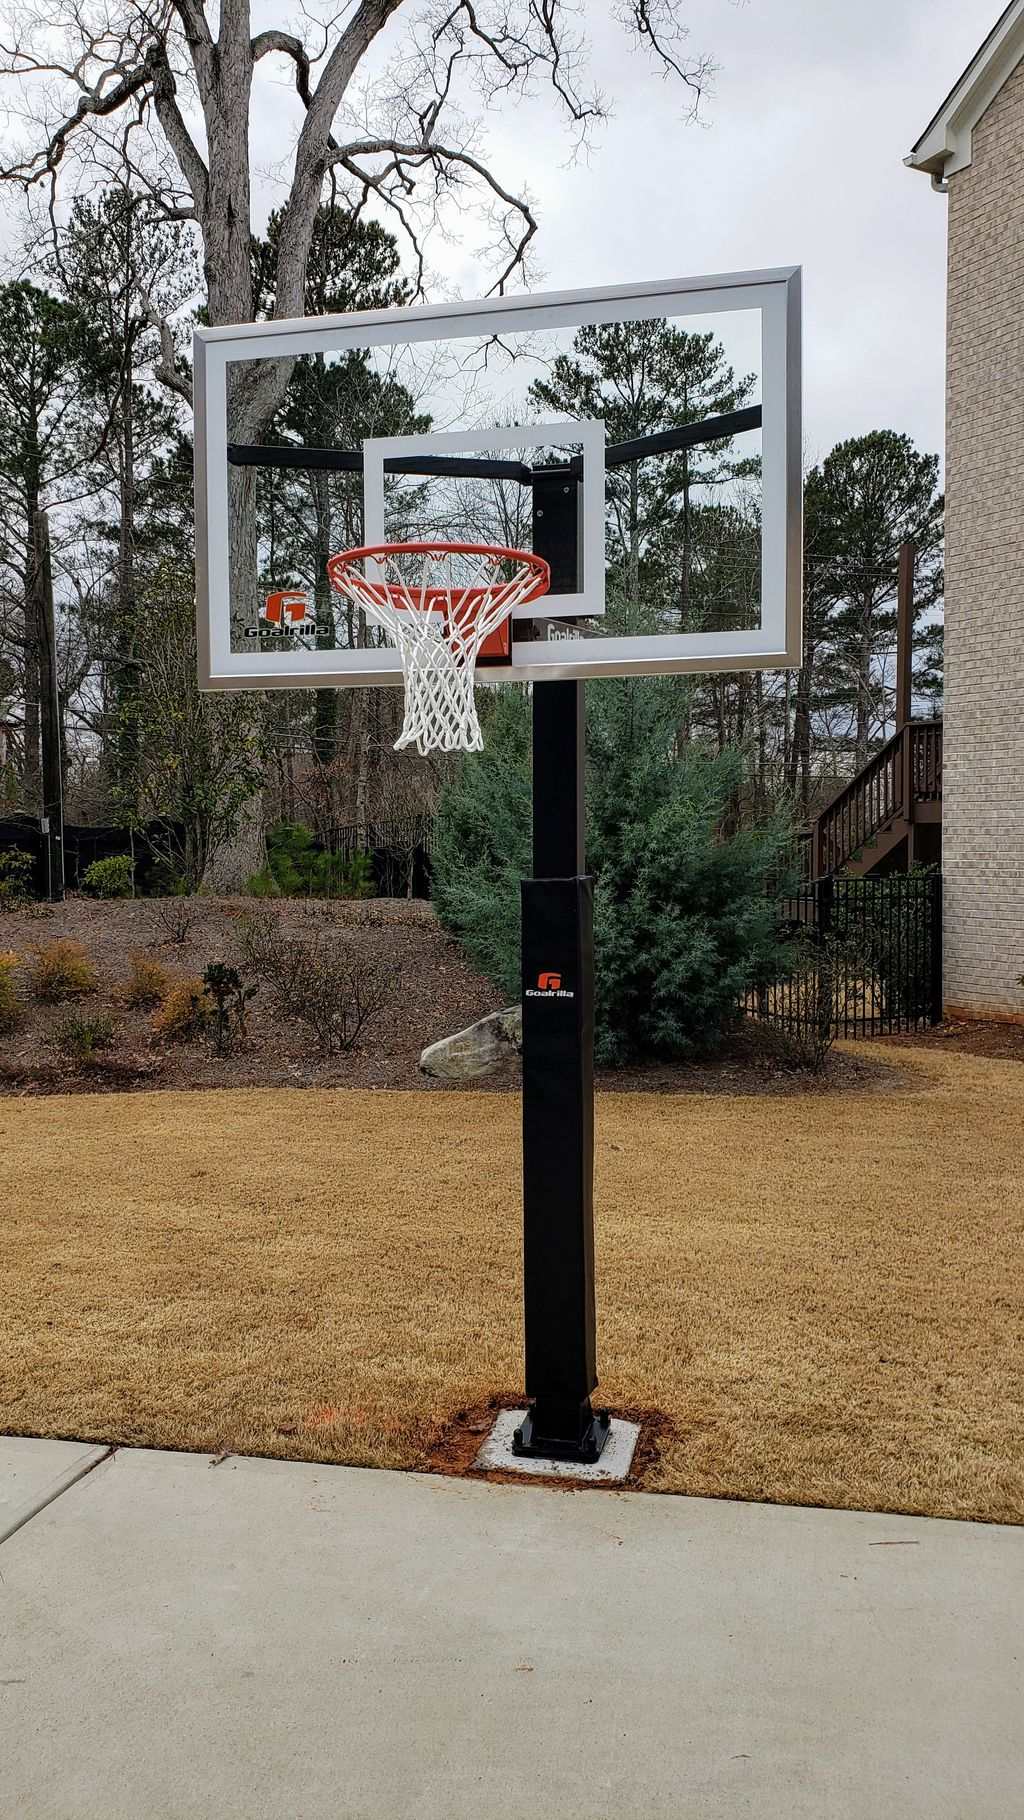 In Ground basketball goal